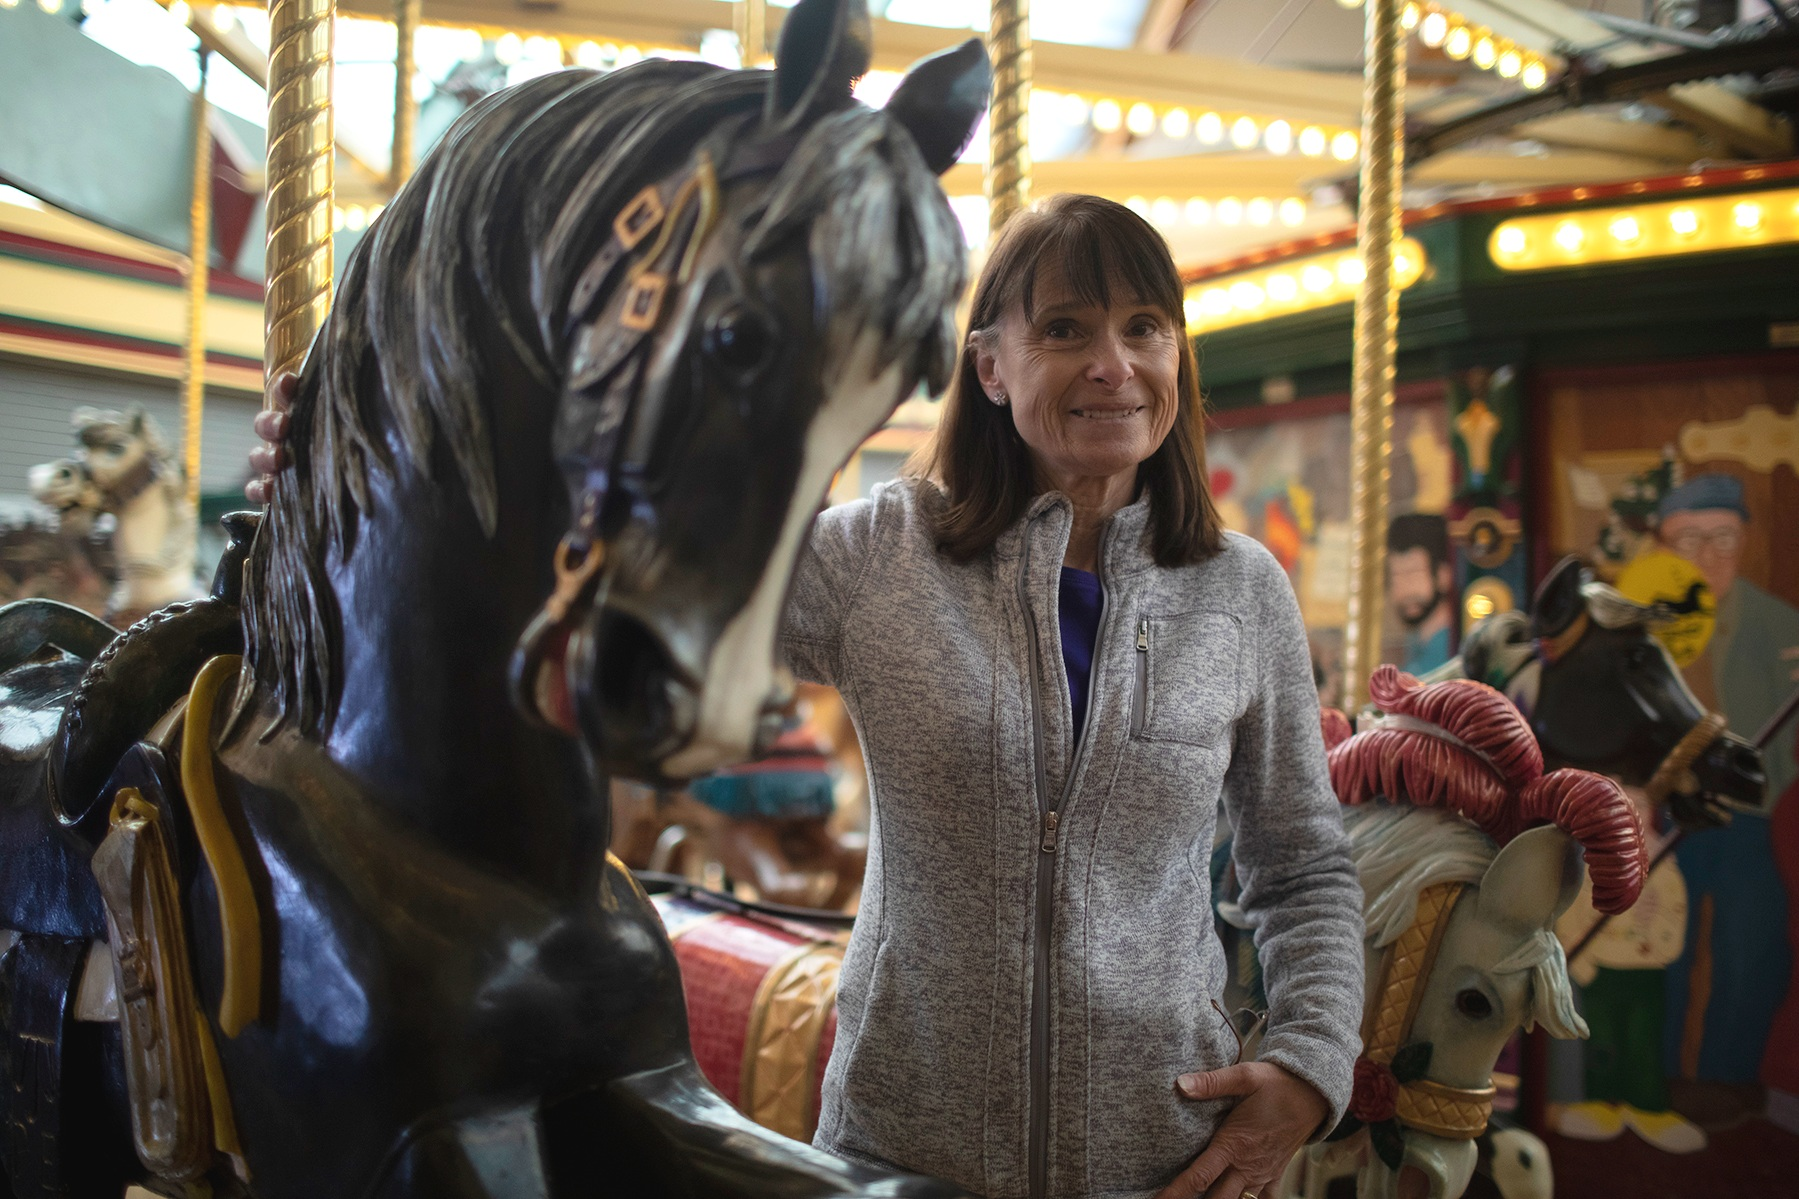 Theresa Cox, FUMC Missoula Building Finance Team Chair, leading a mini tour of Missoula's carousel.